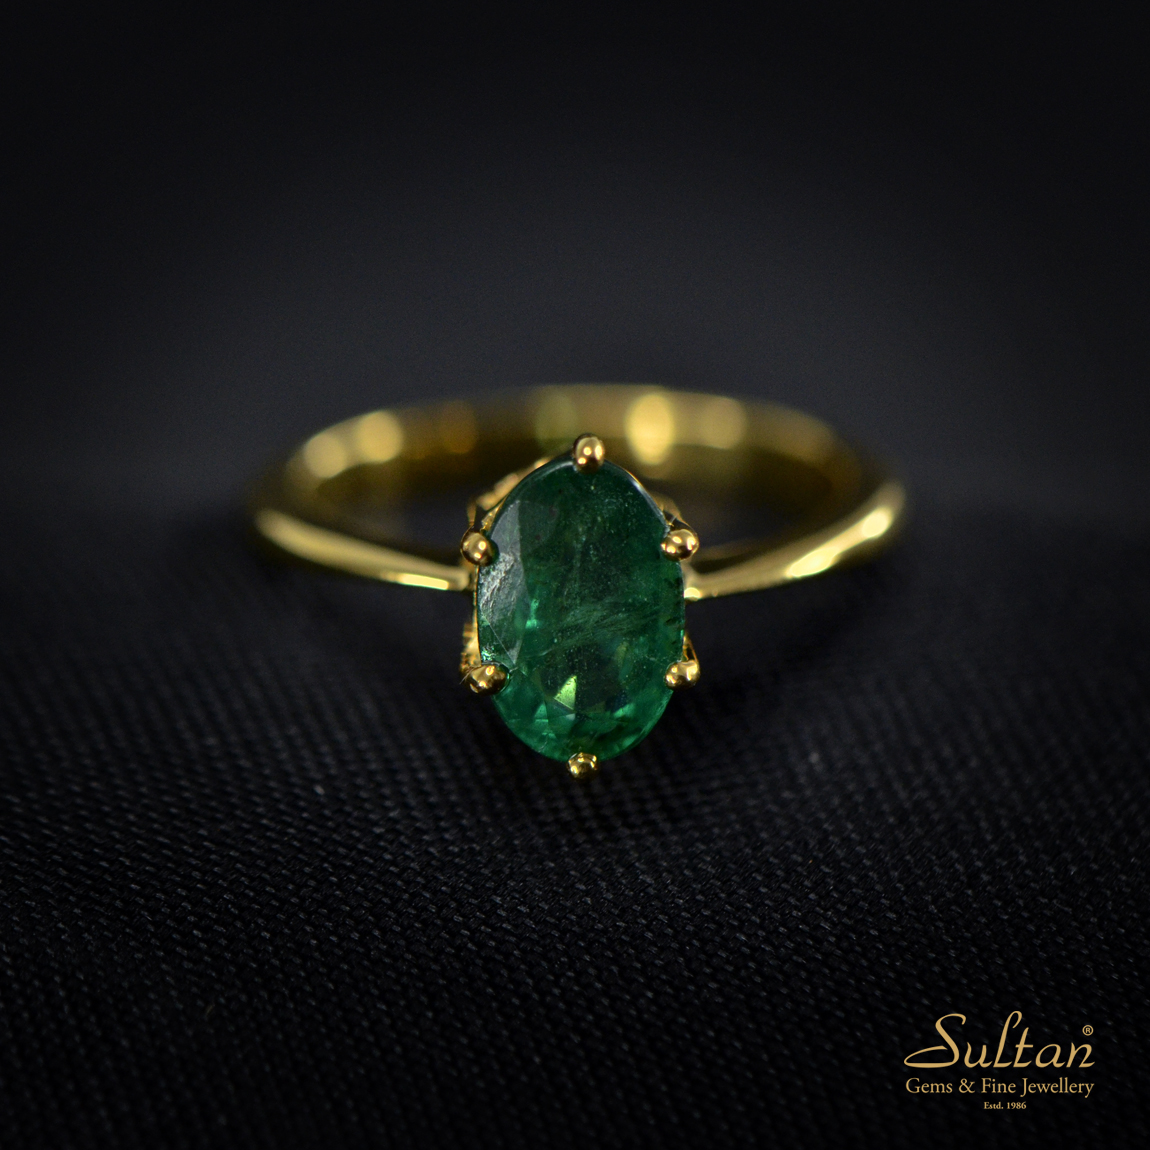 Sultan- Custom Designed Handmade Fine Jewellery